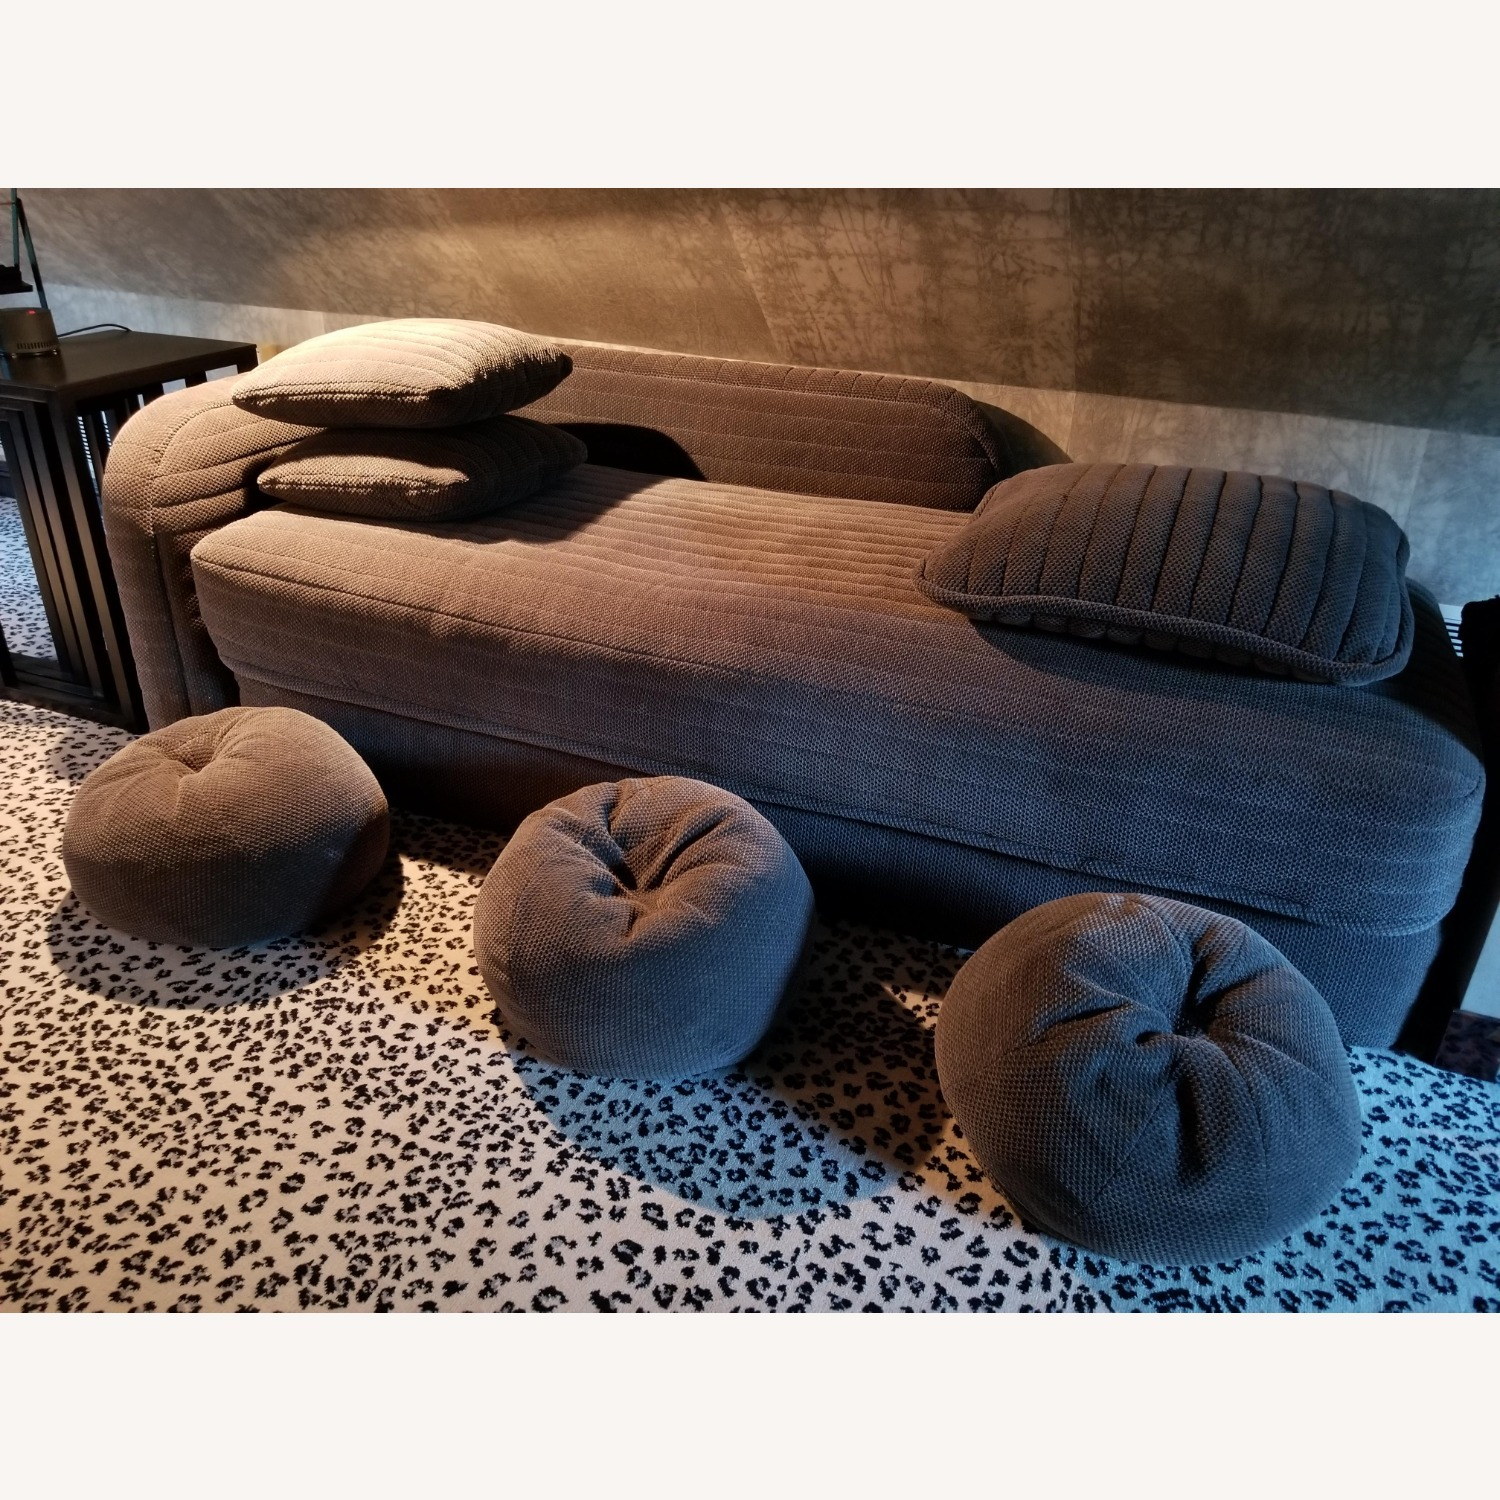 Donghia Daybed W/ Pillows - Queen Fold Out Bed - image-1